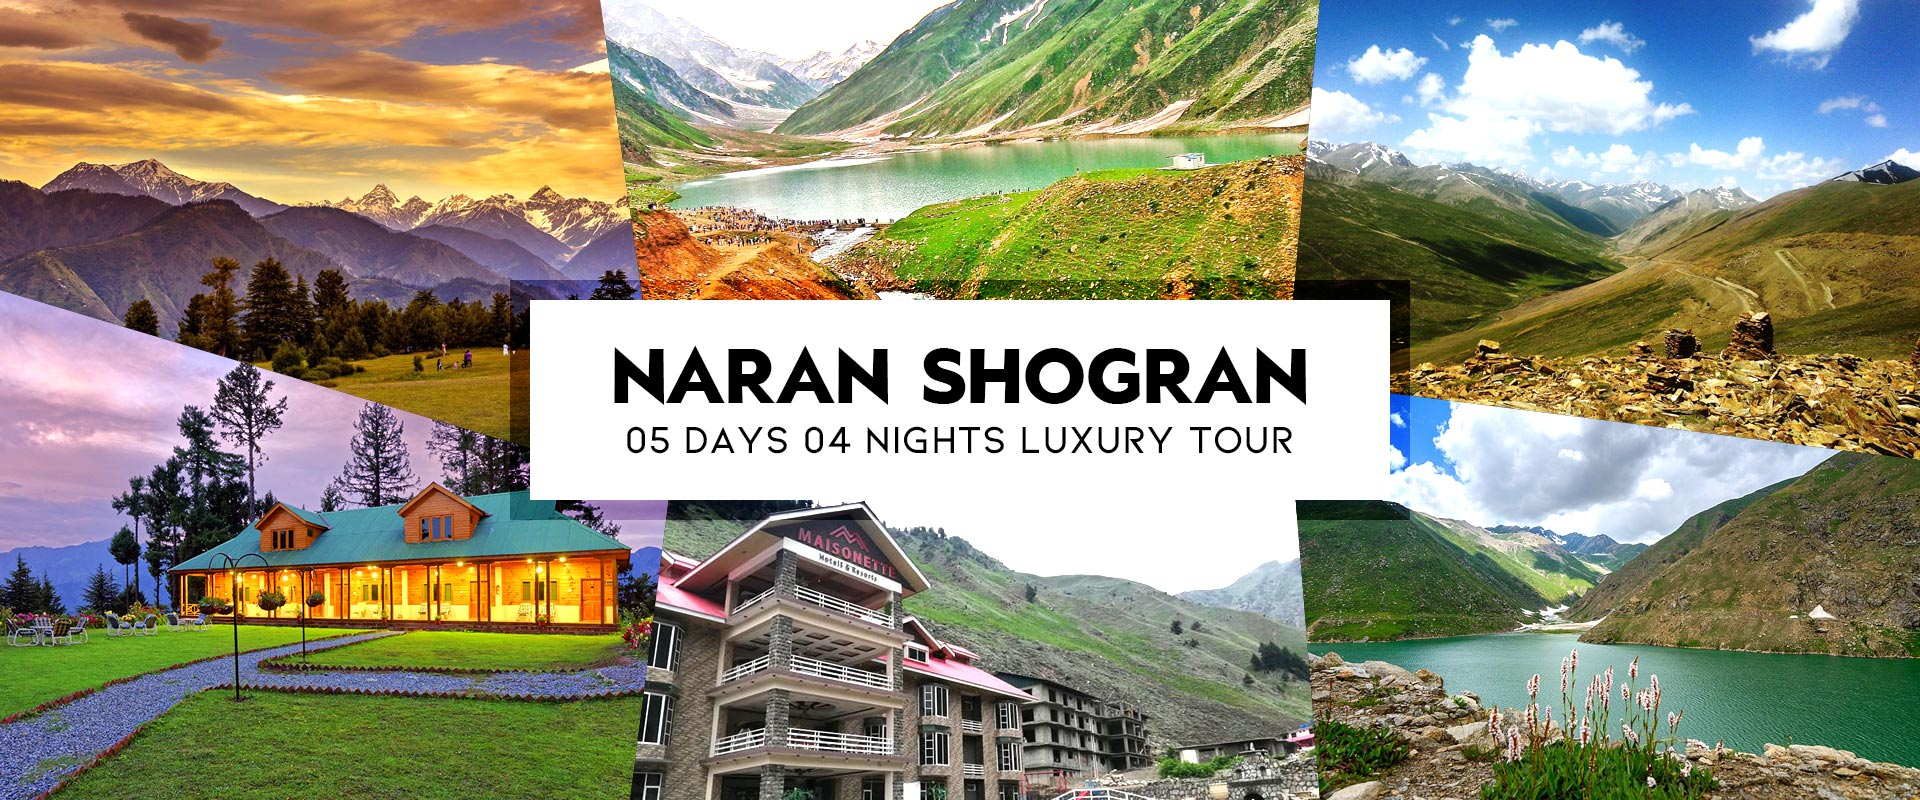 Luxury Facilities for Naran Kaghan Tours 2019 2020